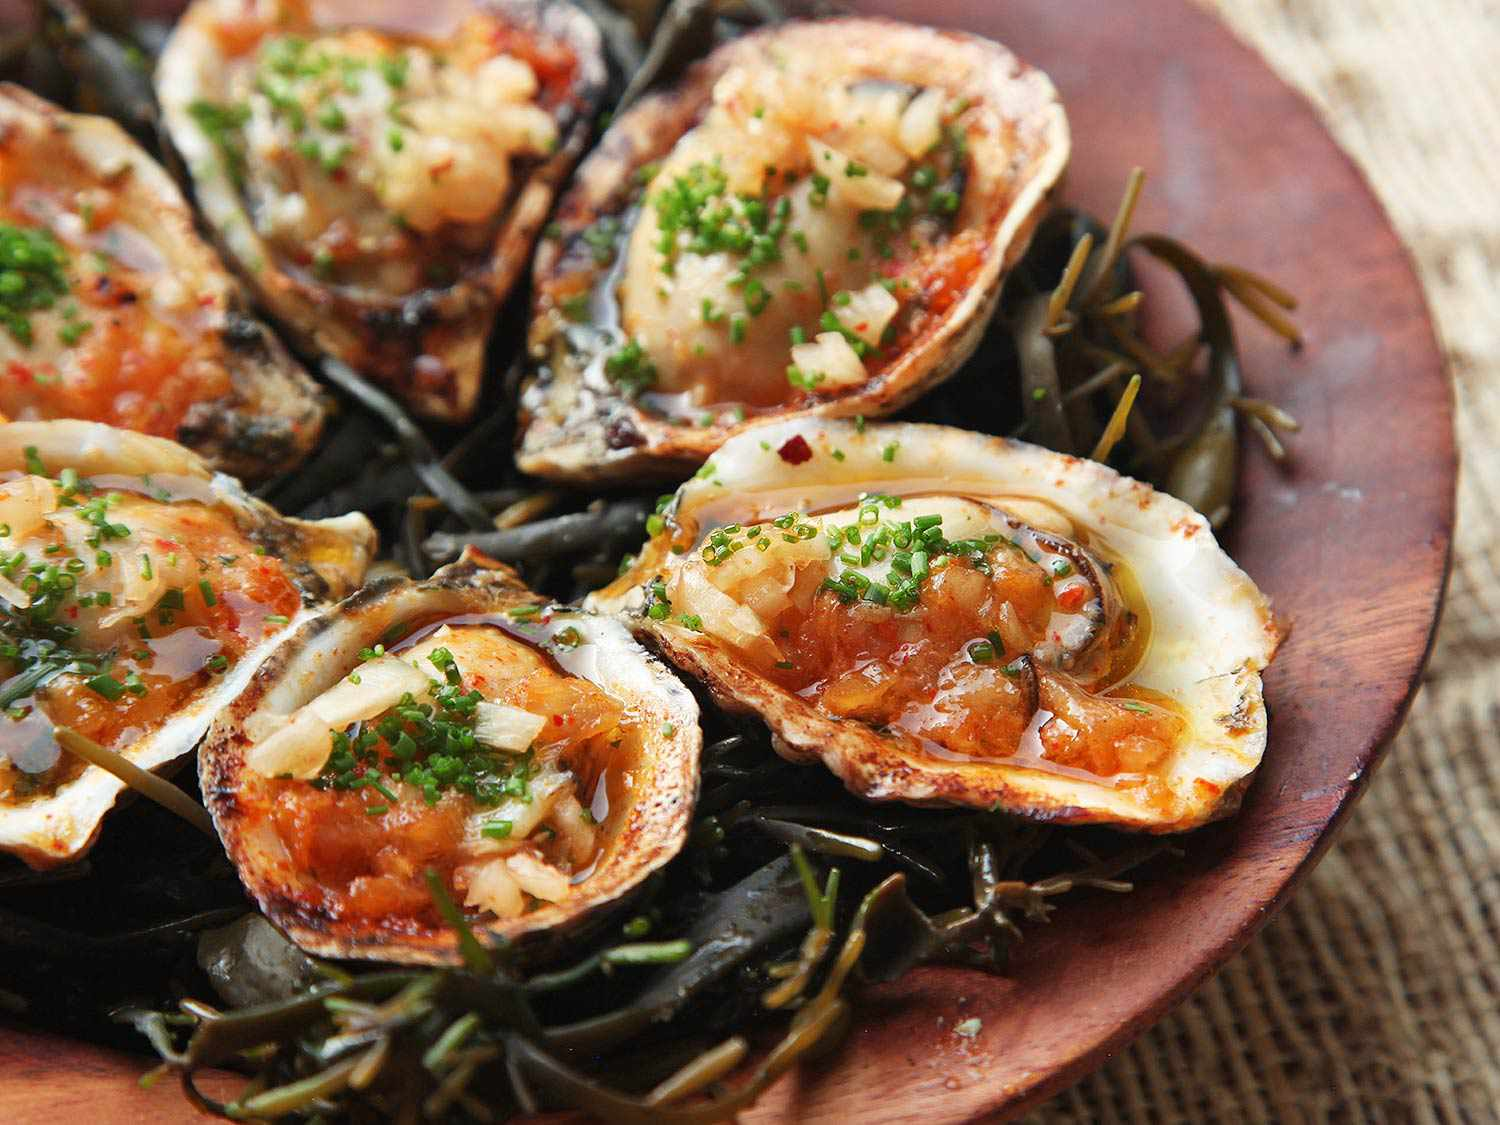 20160801-grilled-oysters-25.jpg